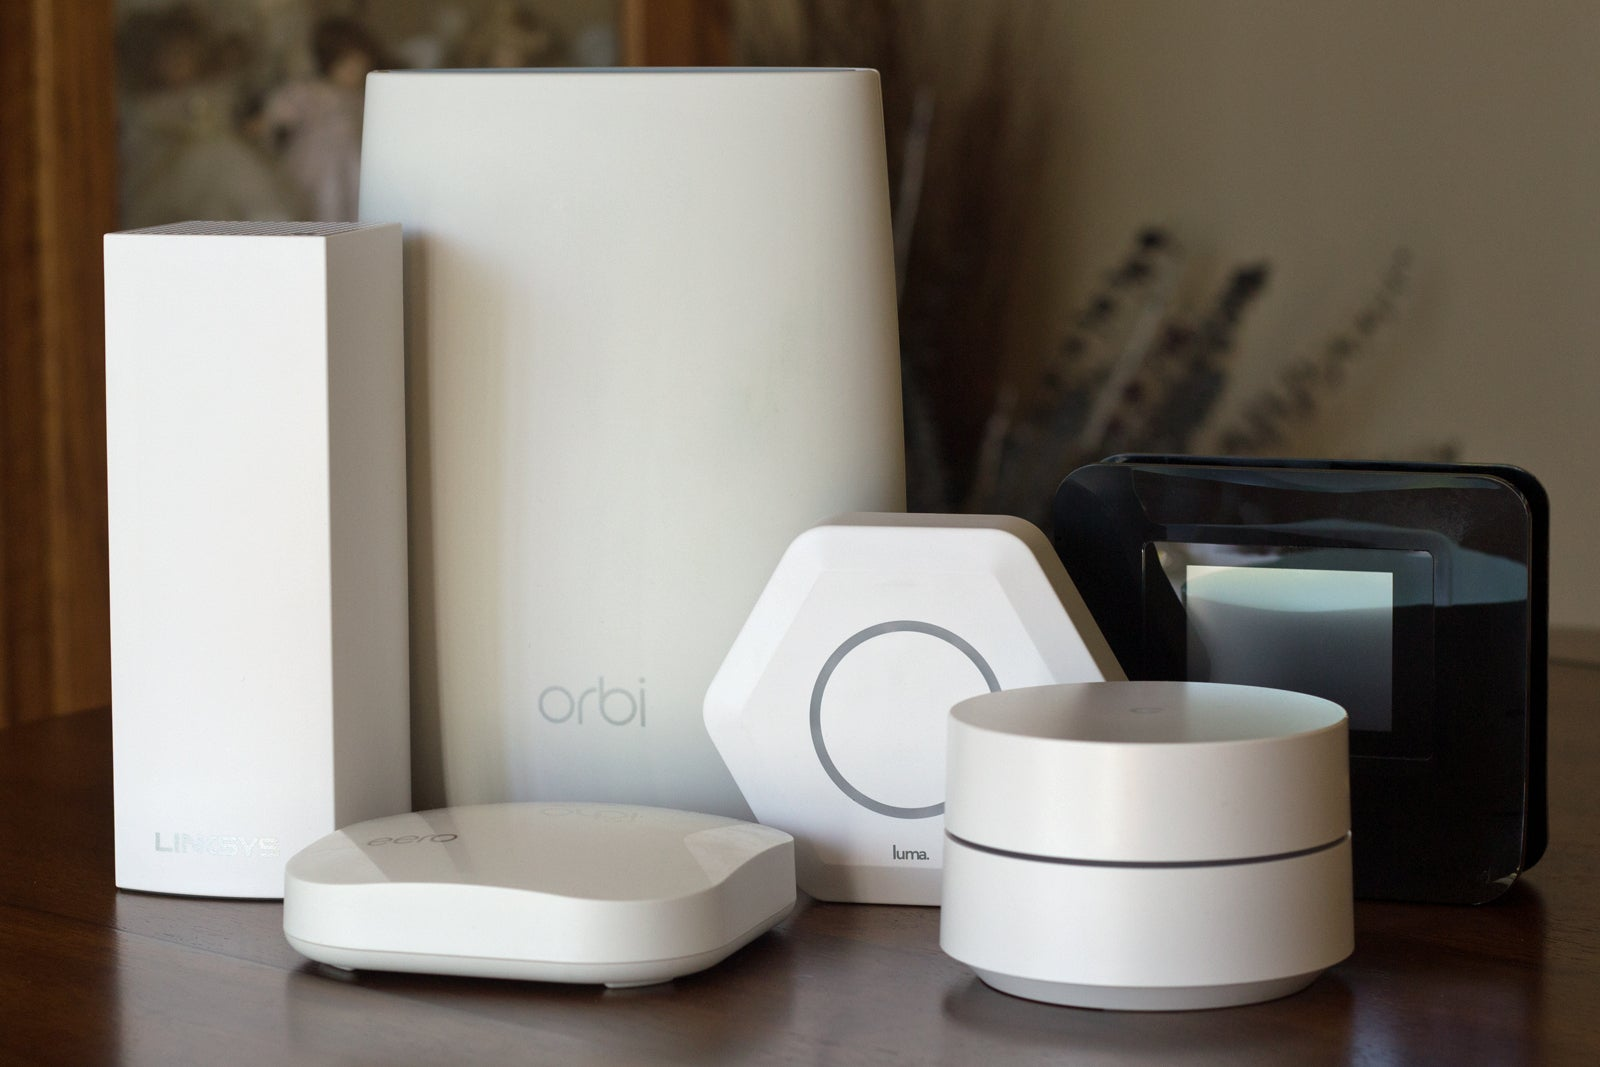 Netgear Orbi Wi-Fi router review: You won't care that it's